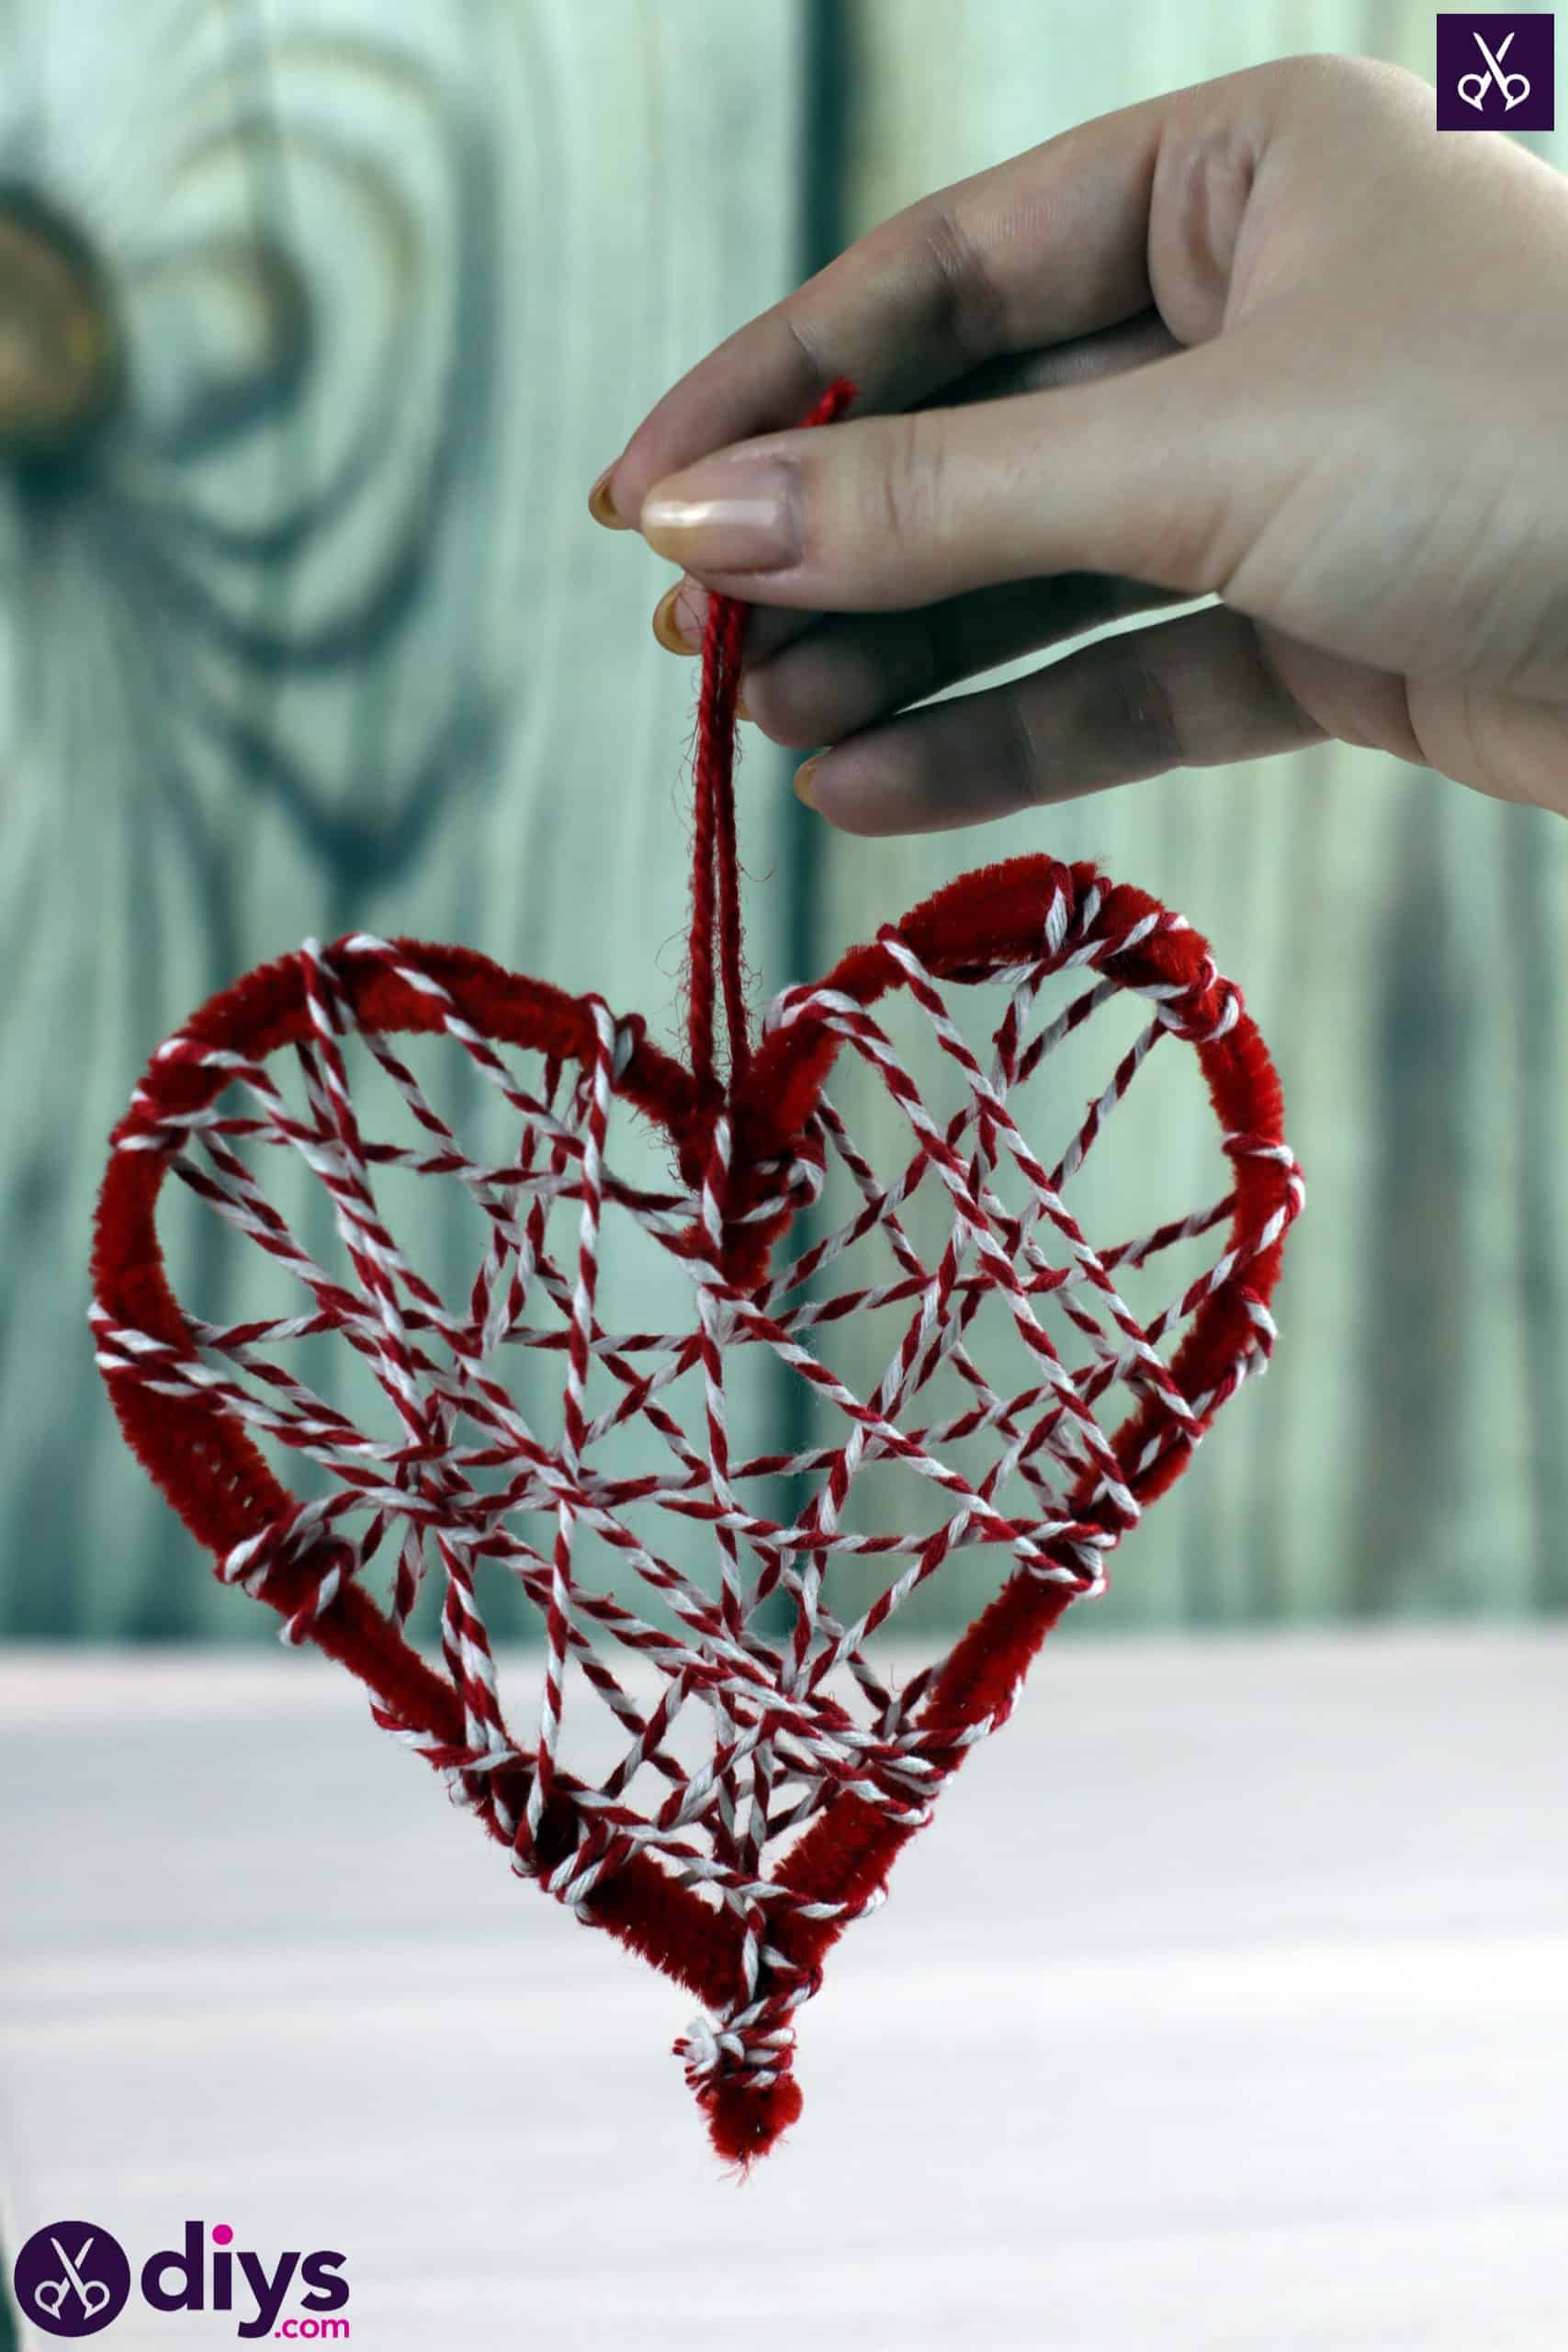 Diy hanging heart wall decor step 4j